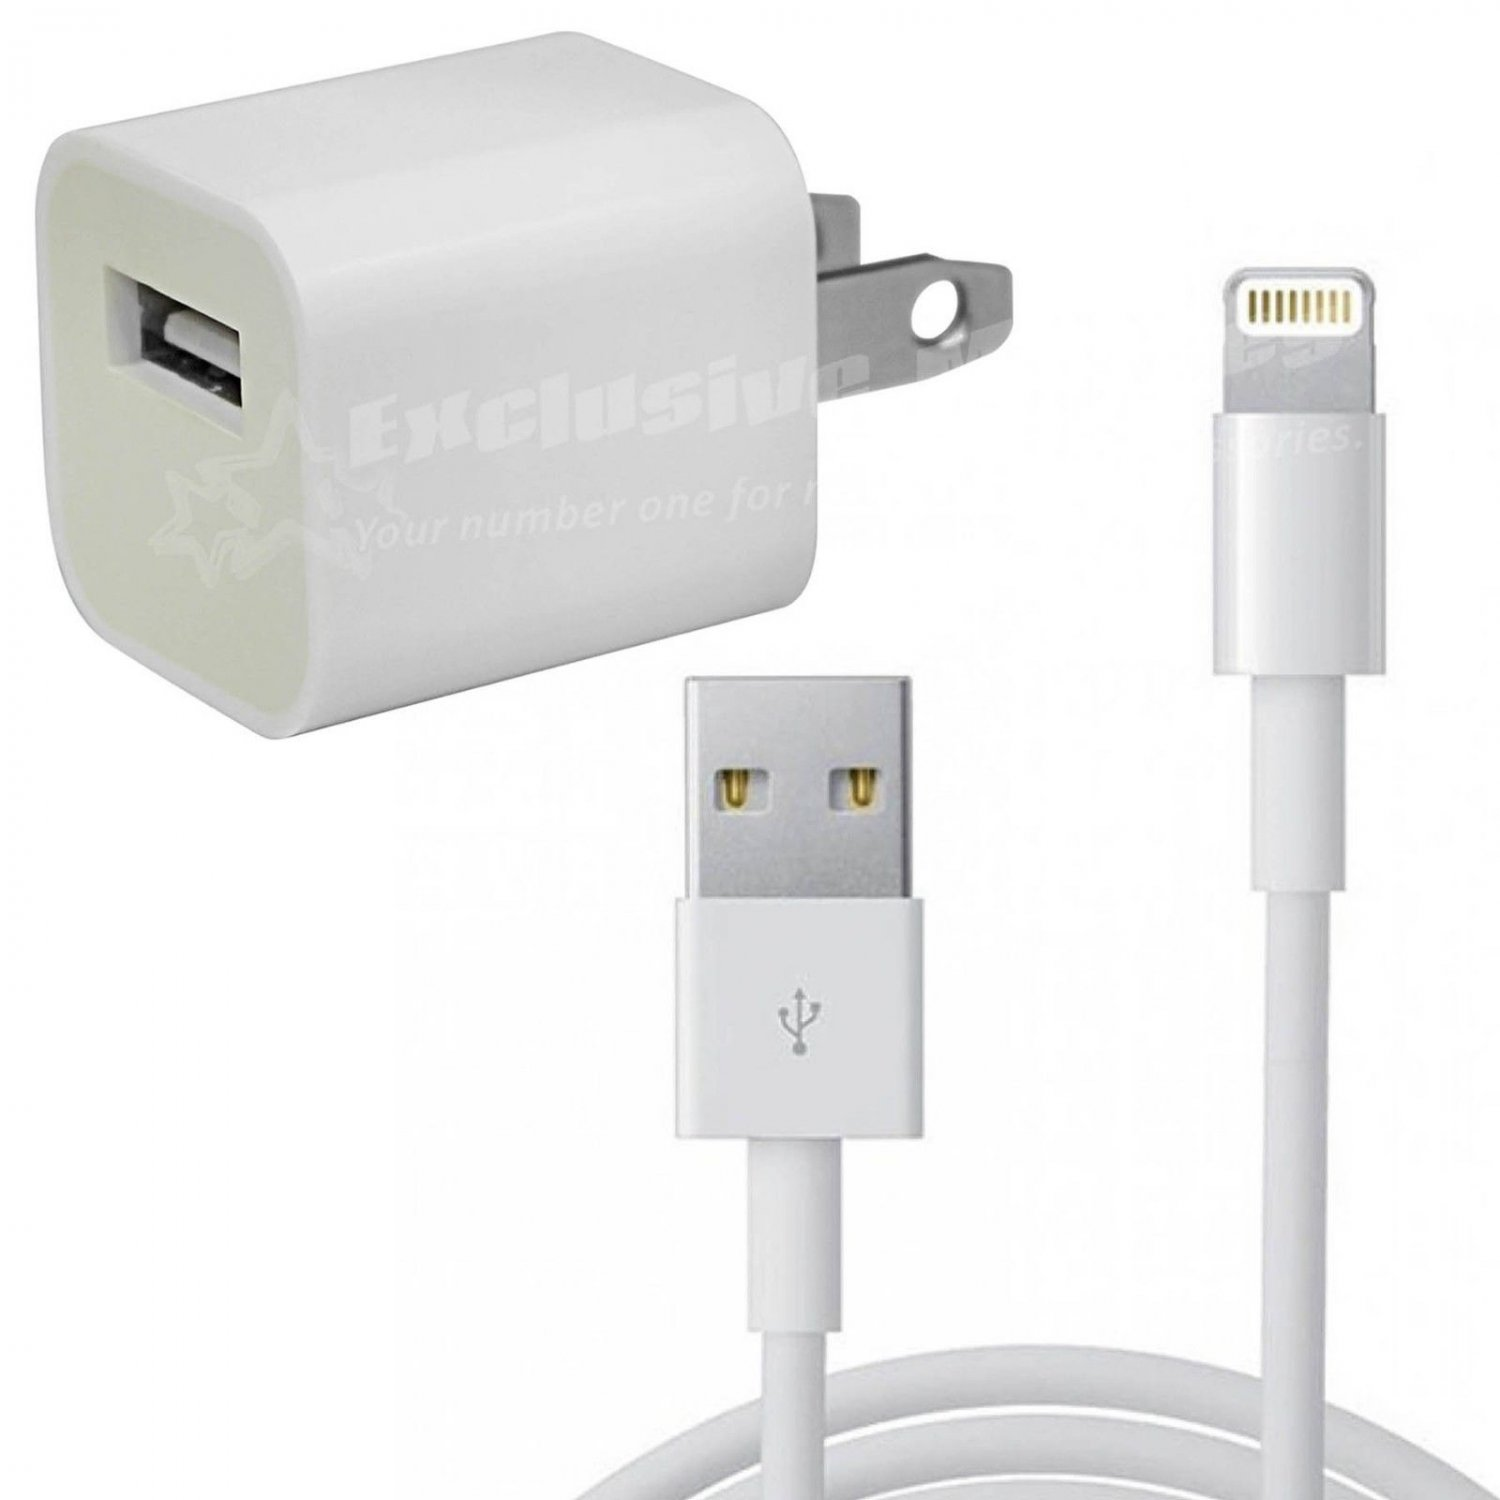 USB Home AC Wall Charger w/ 8 Pin Data Sync Cable Cord for Apple iPhone 5C, USA Plug